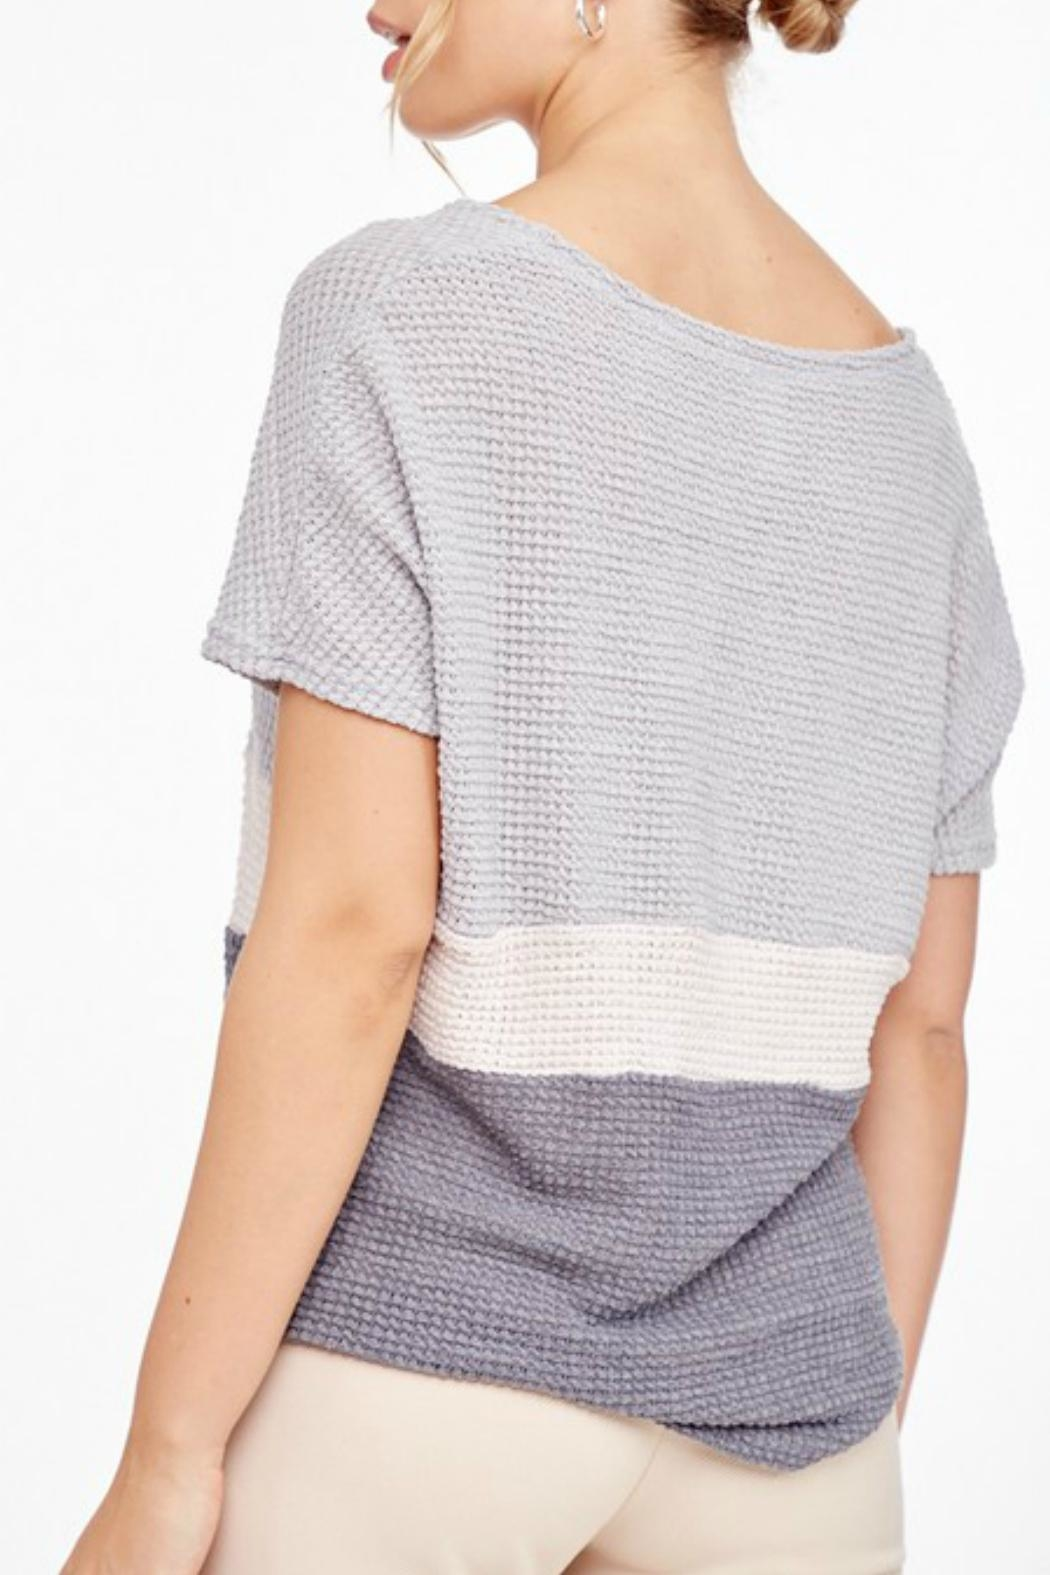 L Love Shortsleeve Knitted Top - Front Full Image